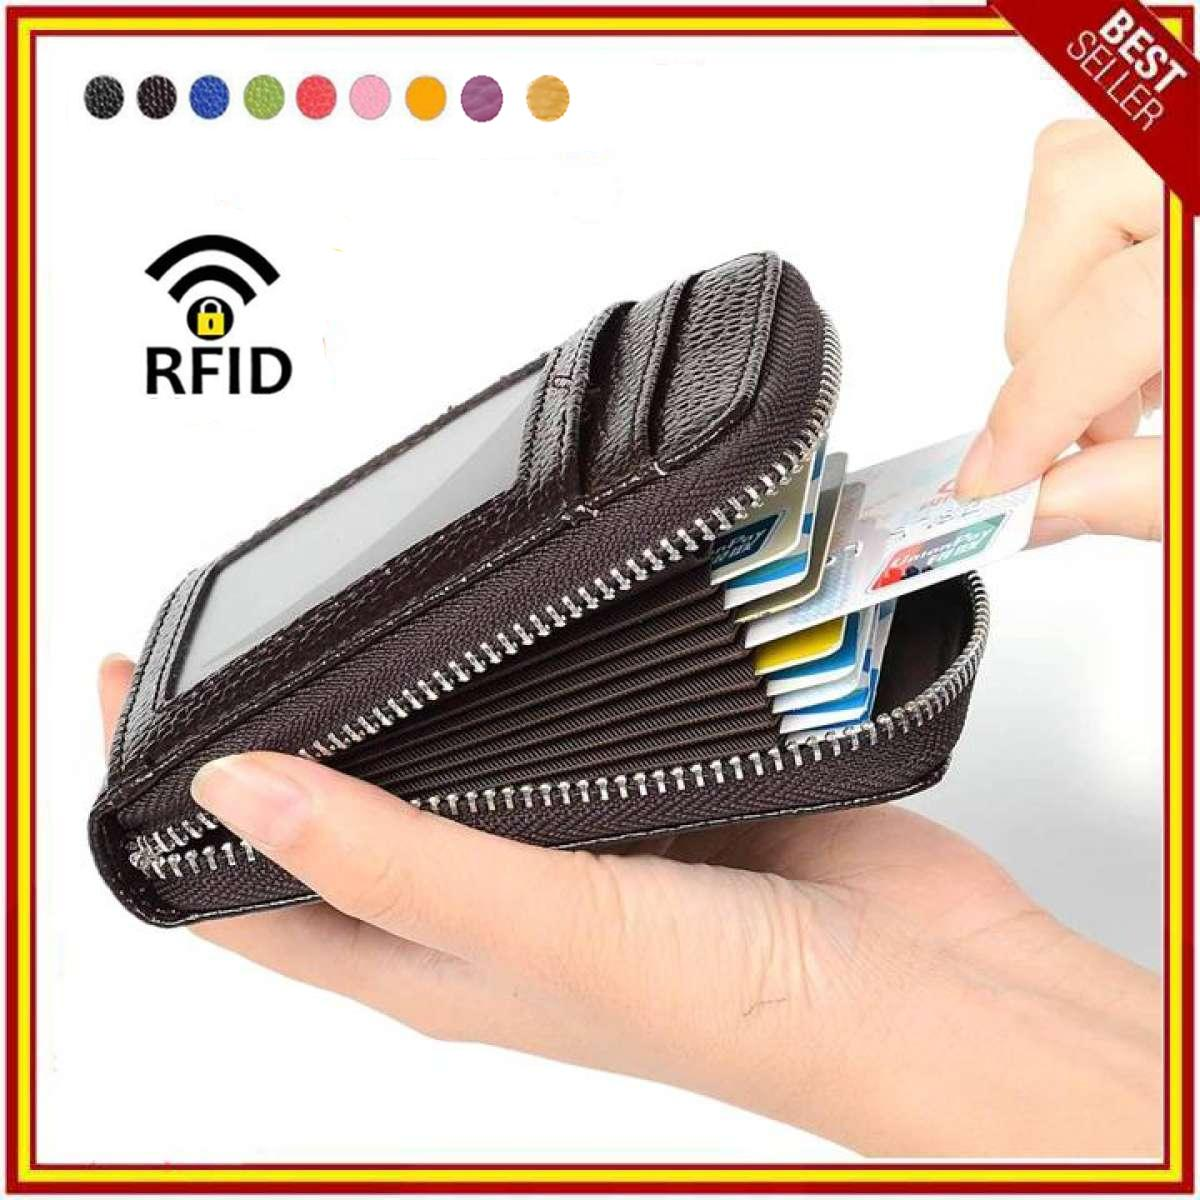 RFID Blocking Genuine Leather Credit Card Case Holder Security Travel  Wallet Front Pocket Wallets for Men 0e4dd29abb7a1